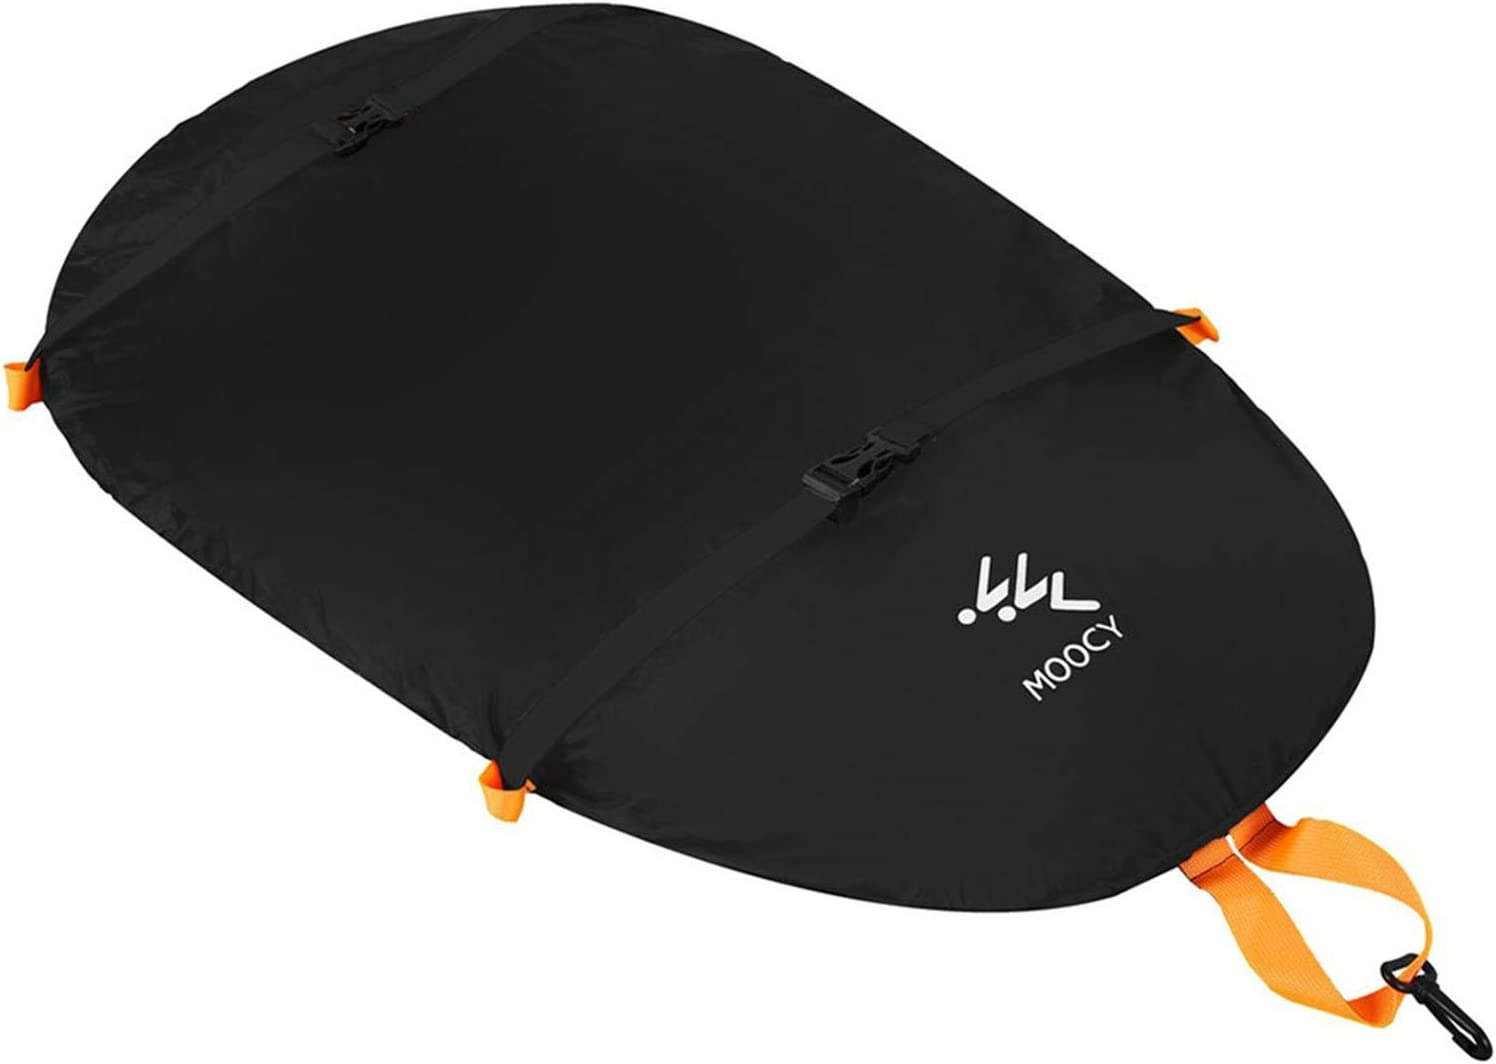 Cheng-store Jacksonville Mall Kayak Cover Waterproof Outside Coc for Storage Large-scale sale